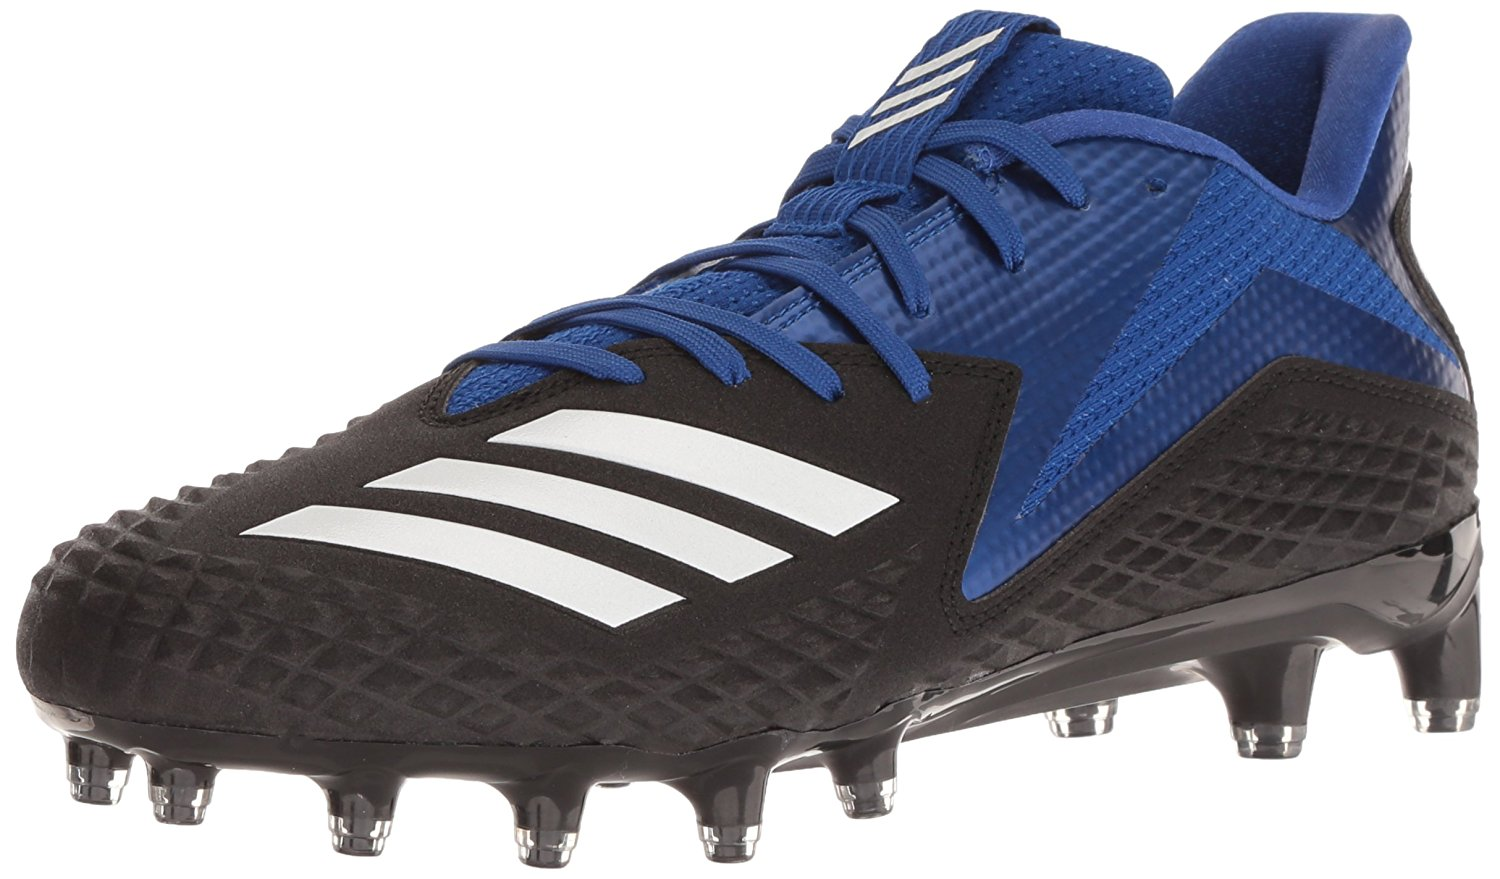 brand new 23bbf e877c Adidas Mens Freak x Carbon Hight Top Lace Up Baseball Shoes